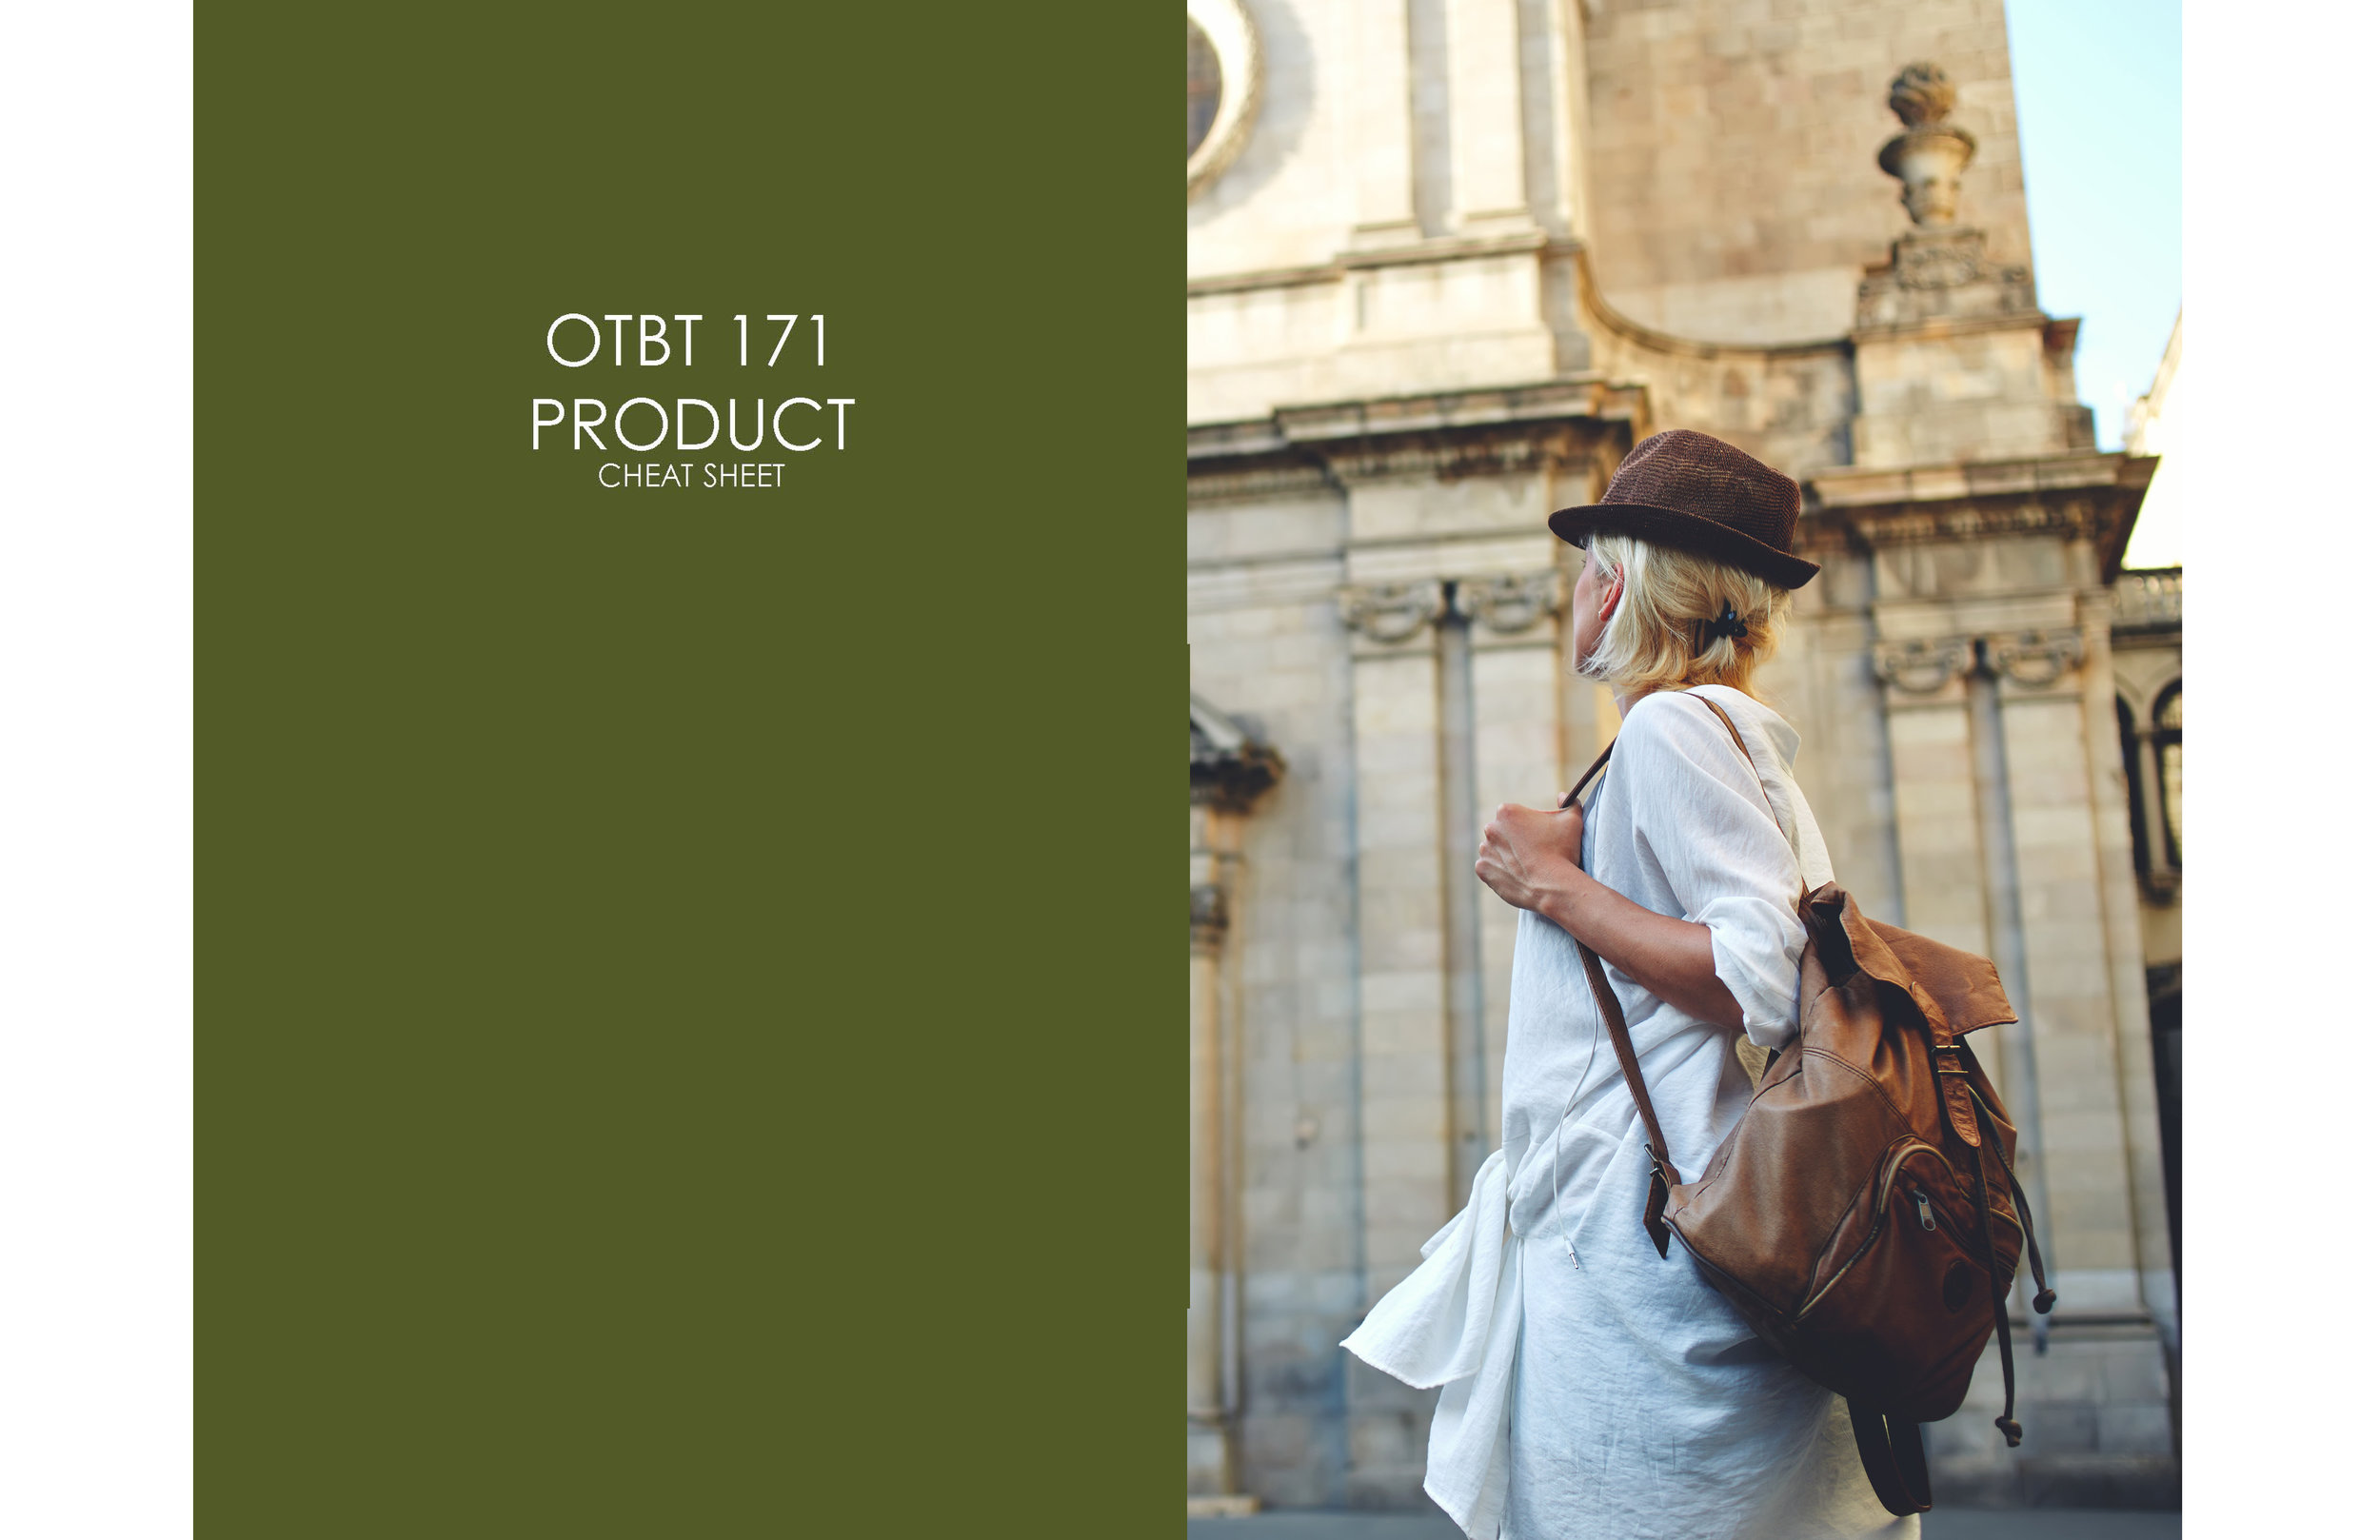 171 OTBT Product Booklet.jpg